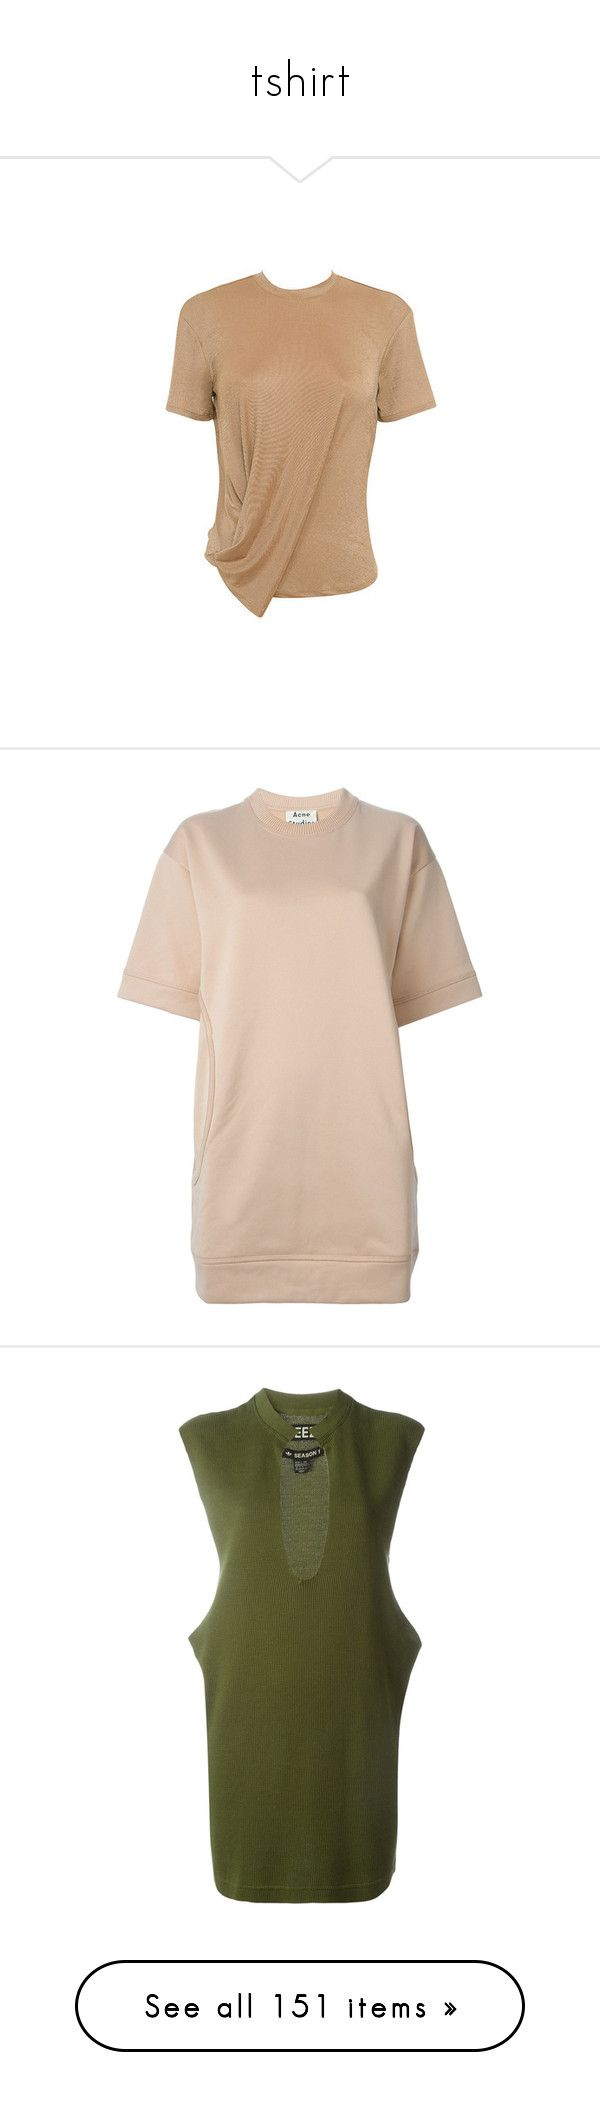 """""""tshirt"""" by neide-goncalvesbrito on Polyvore featuring tops, t-shirts, sand t shirt, beige top, knit t shirt, beige t shirt, short sleeve tee, dresses, short sleeve dress et short-sleeve dresses"""